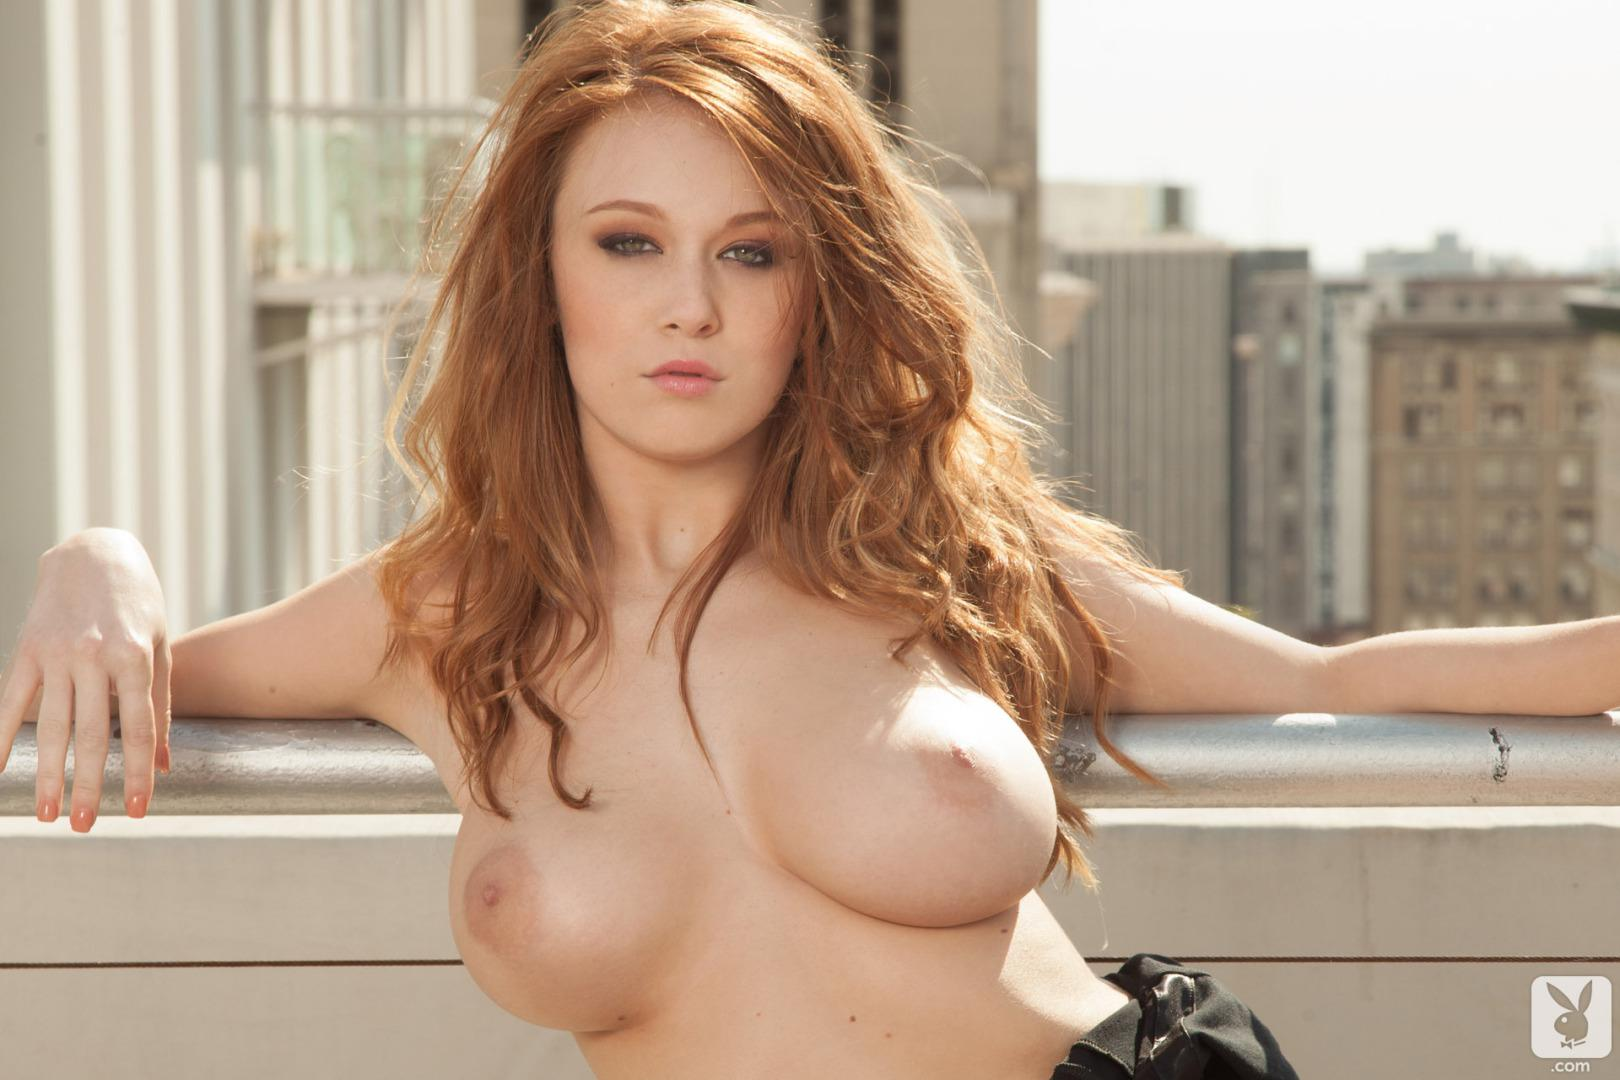 Dubstep girl leanna decker music video